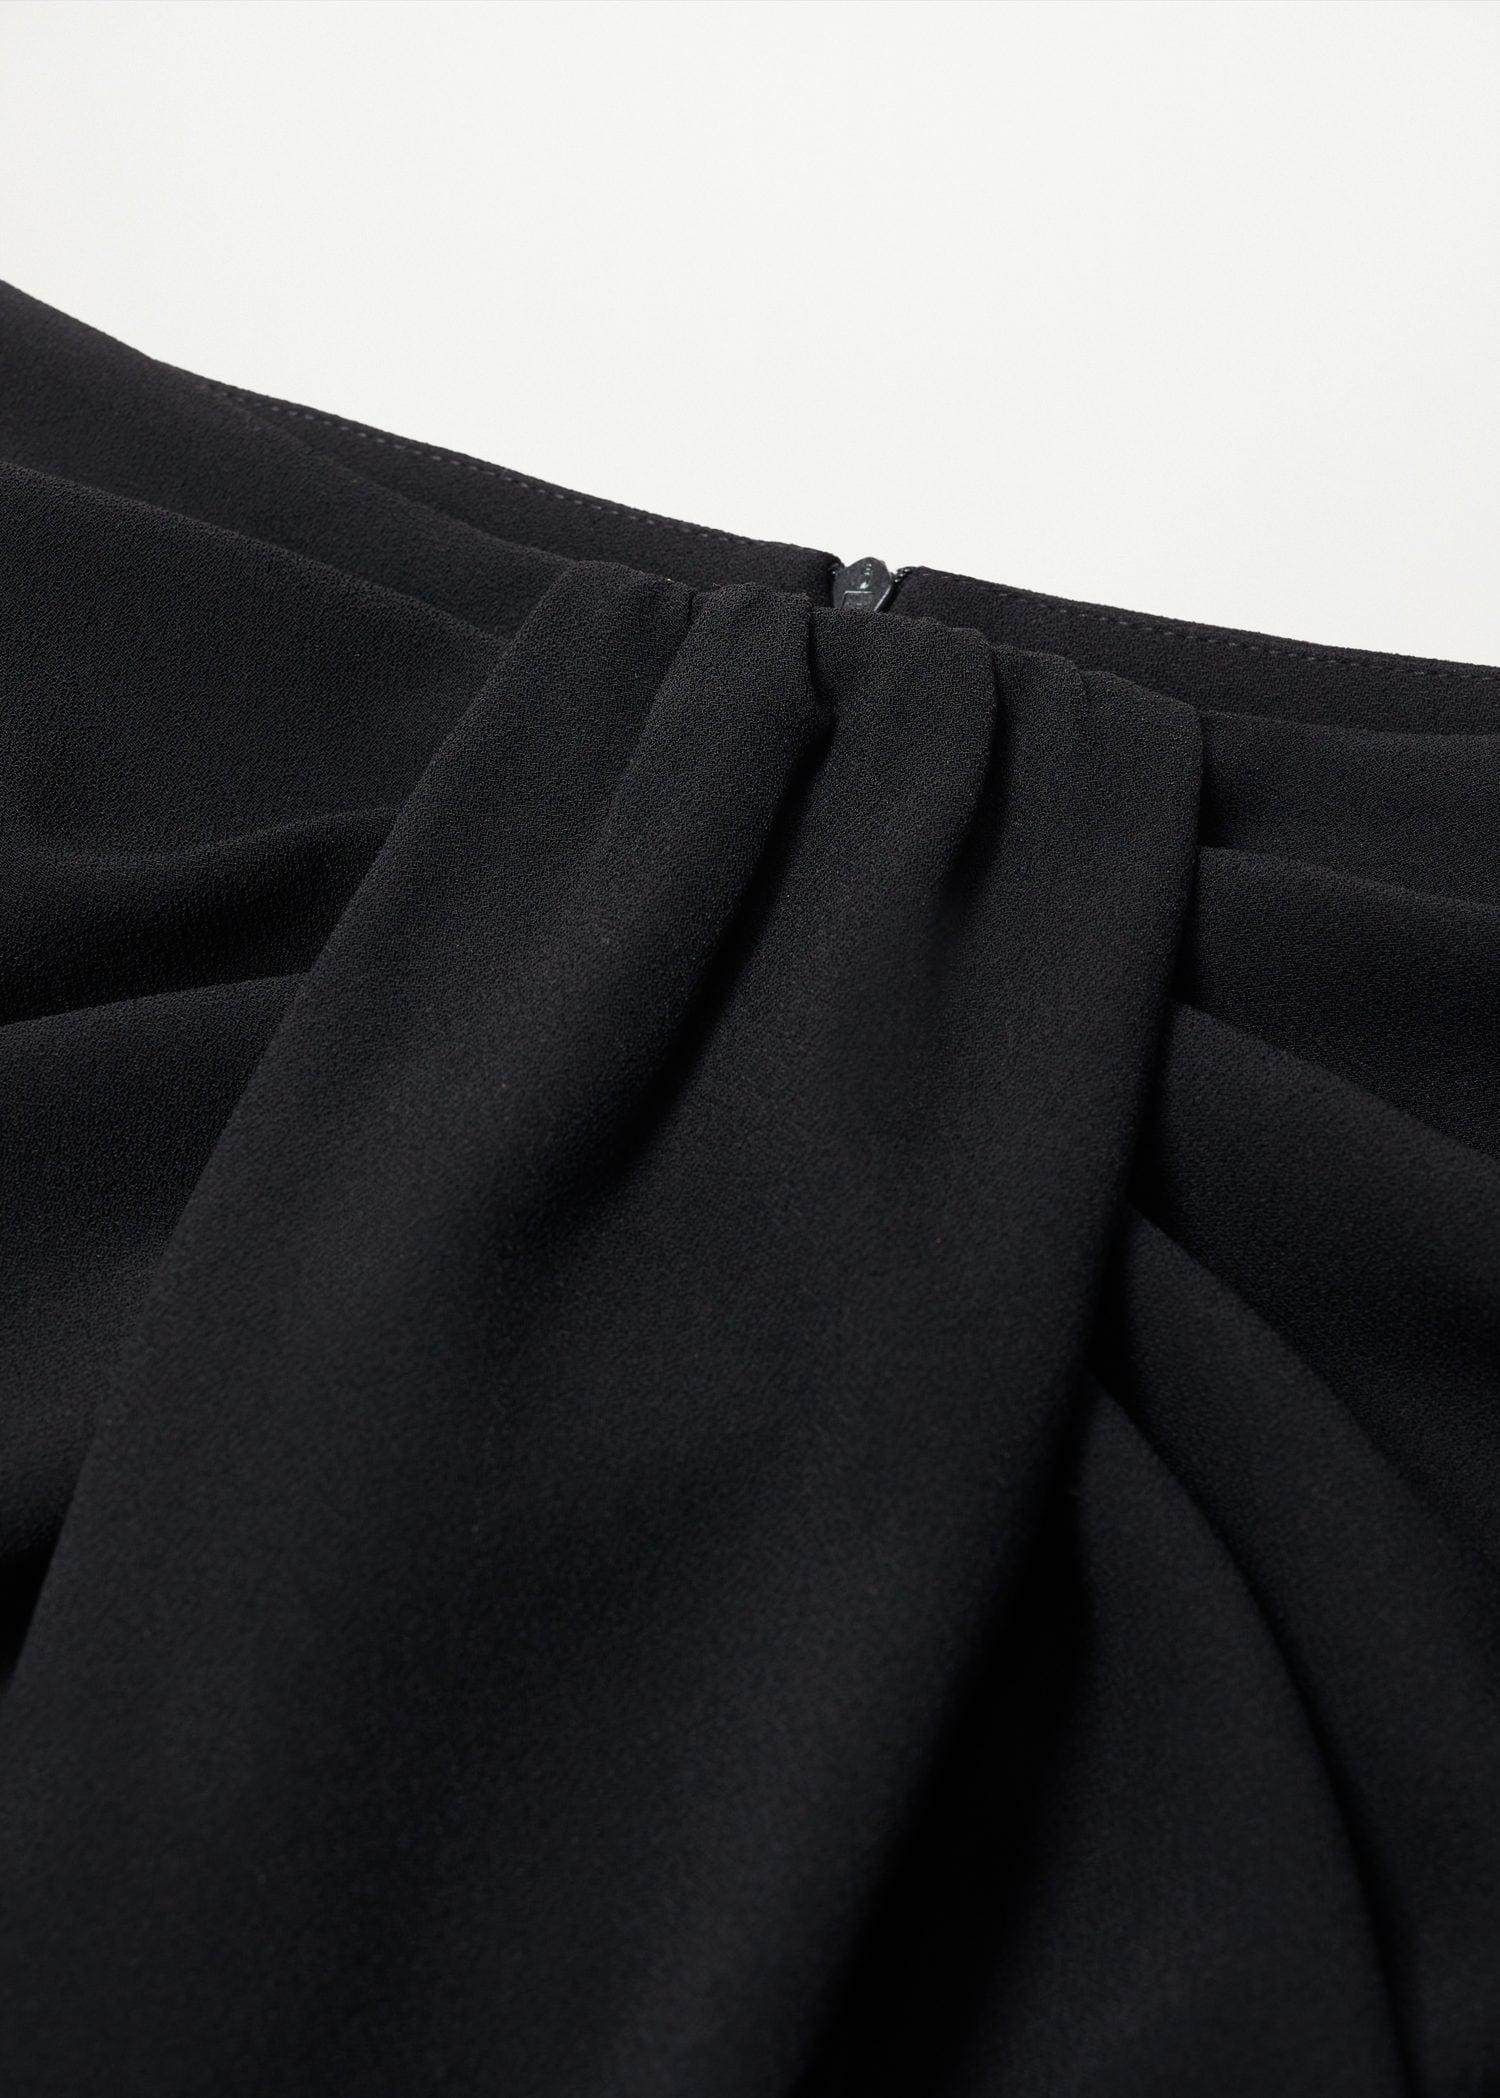 Recycled polyester gathered skirt 6